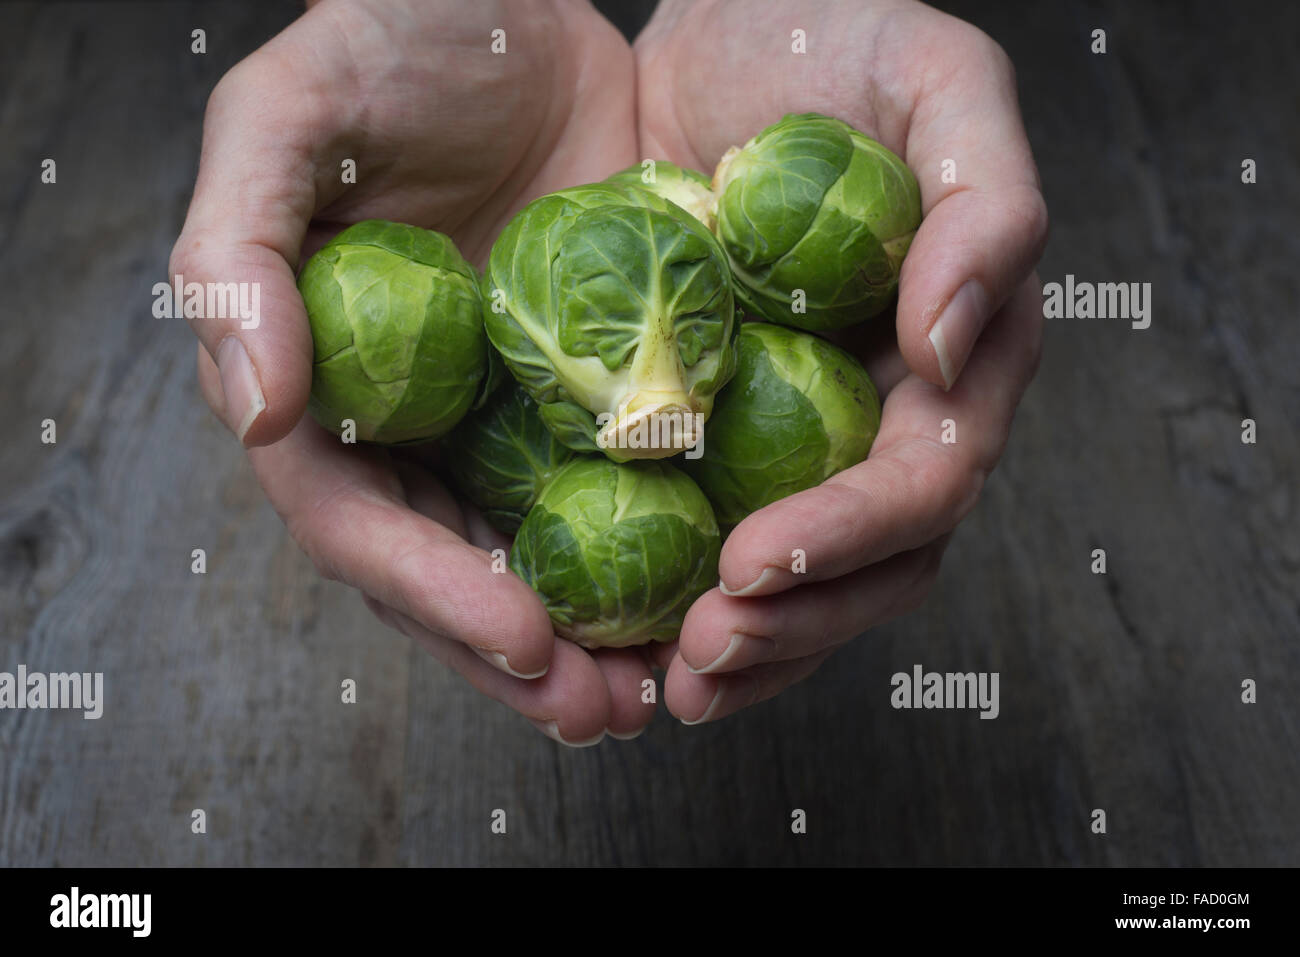 Handful of brussel sprouts - Stock Image